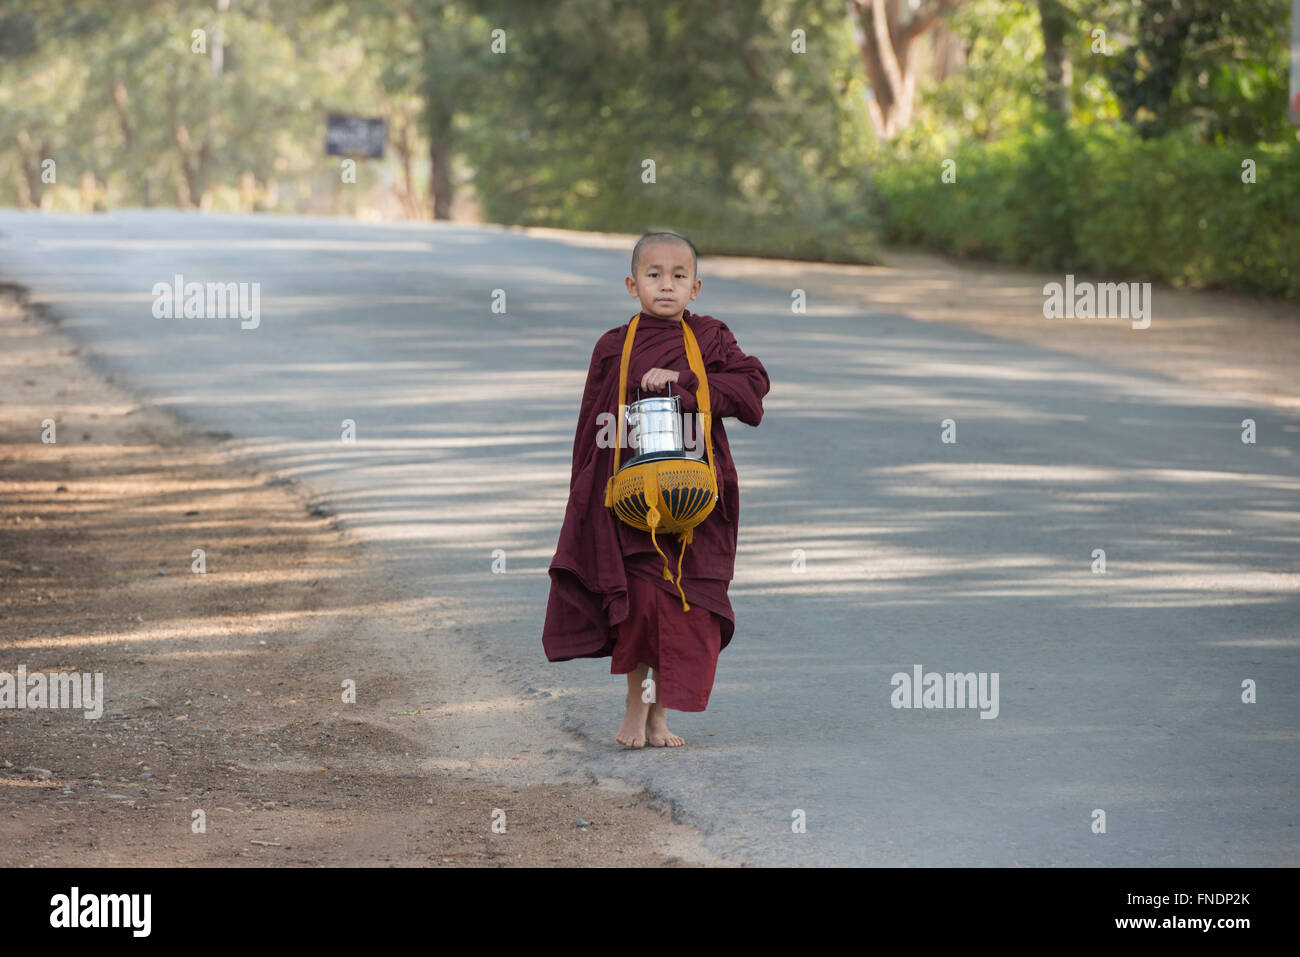 A young monk on his morning alms round, Bagan, Myanmar - Stock Image